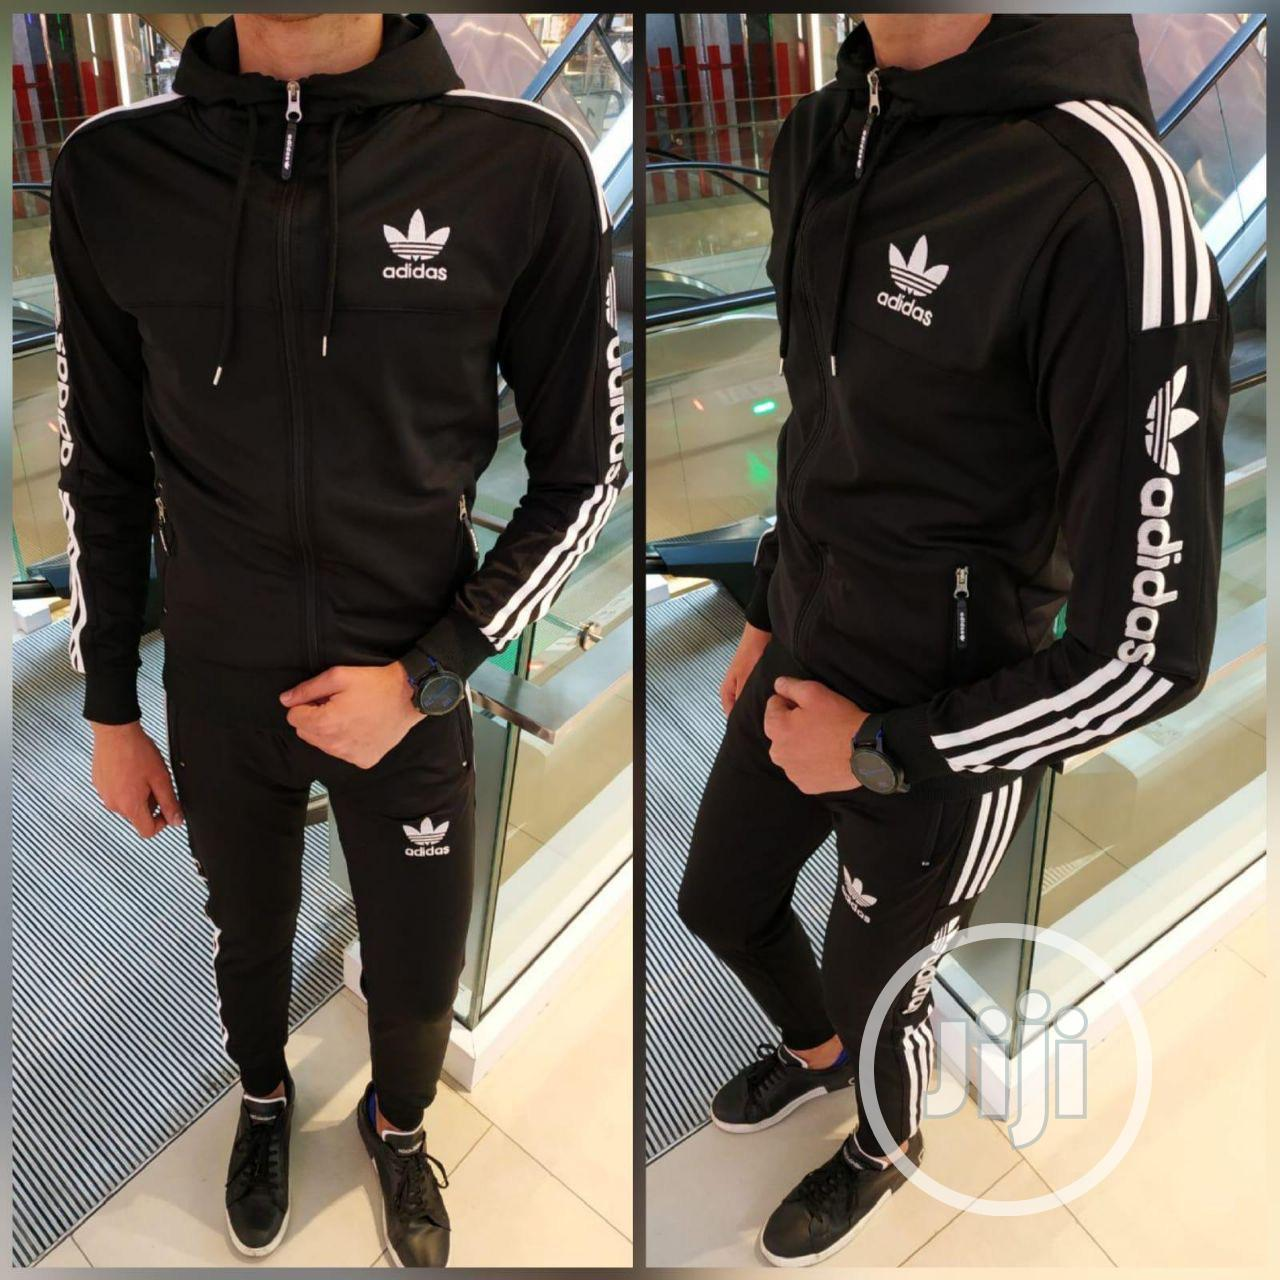 Look Unique With Our Quality Adidas Stock Wears!